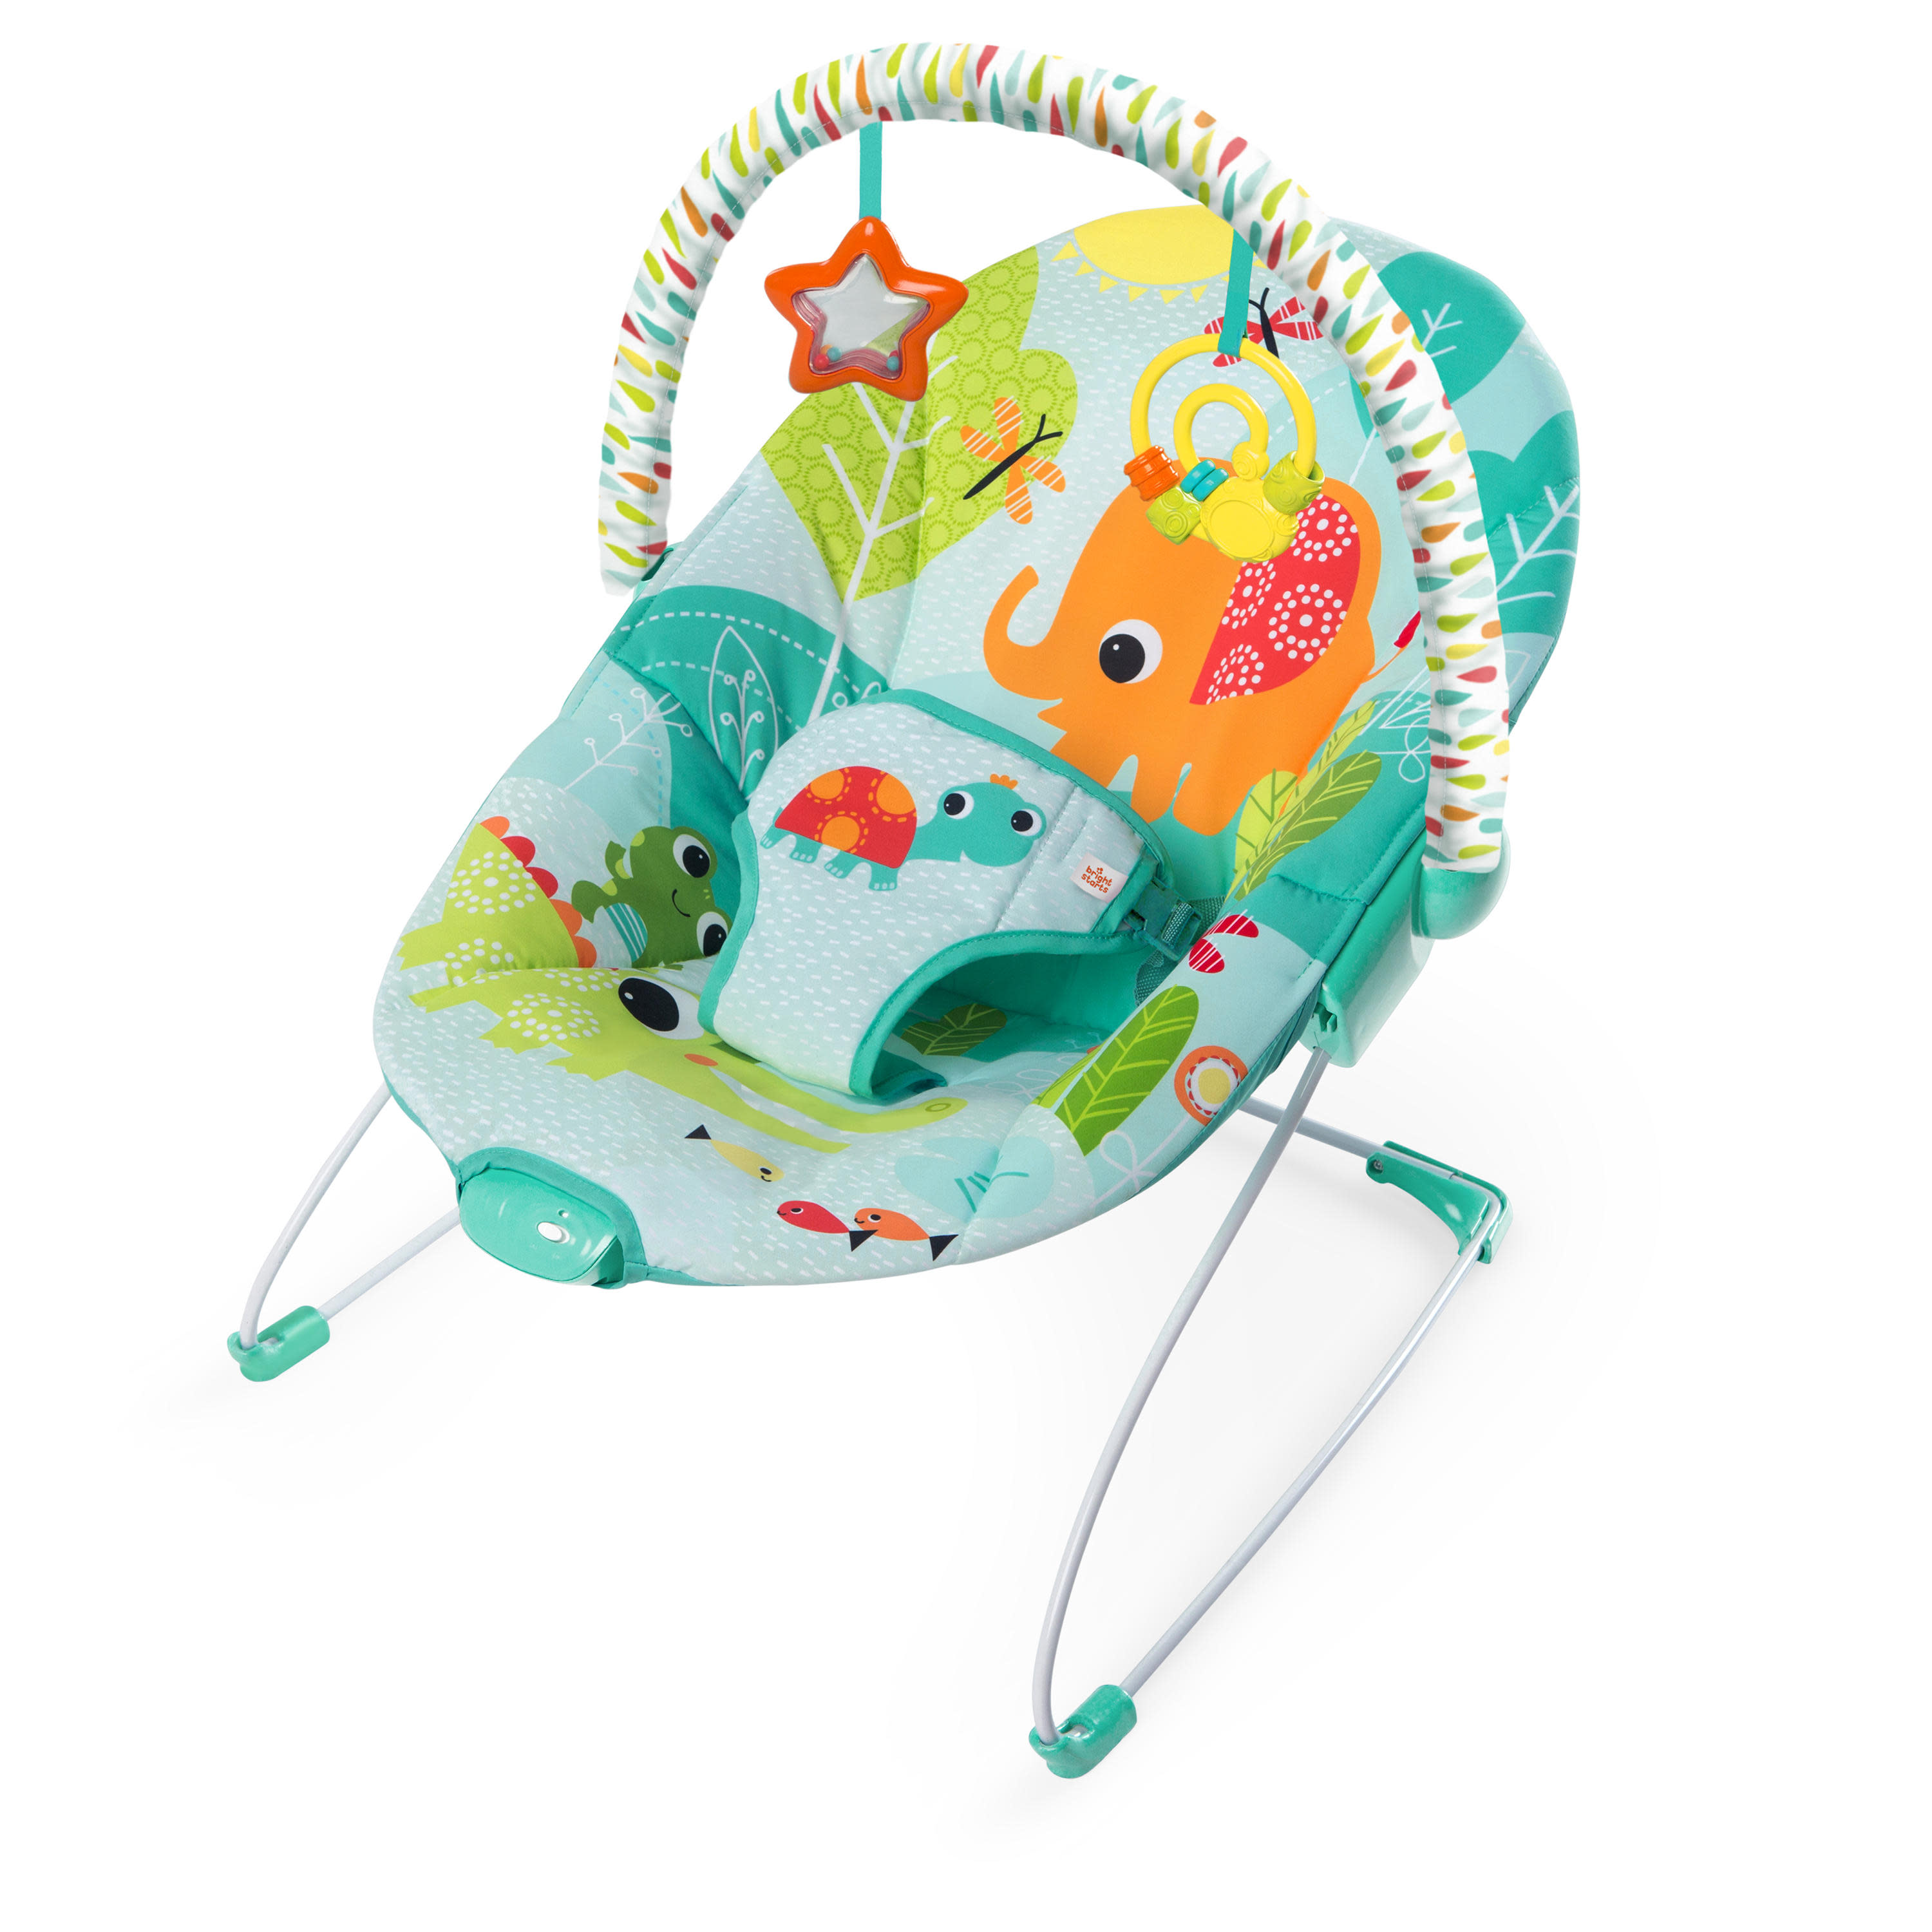 Bright Starts Bouncer Seat - Raindrop Rainforest